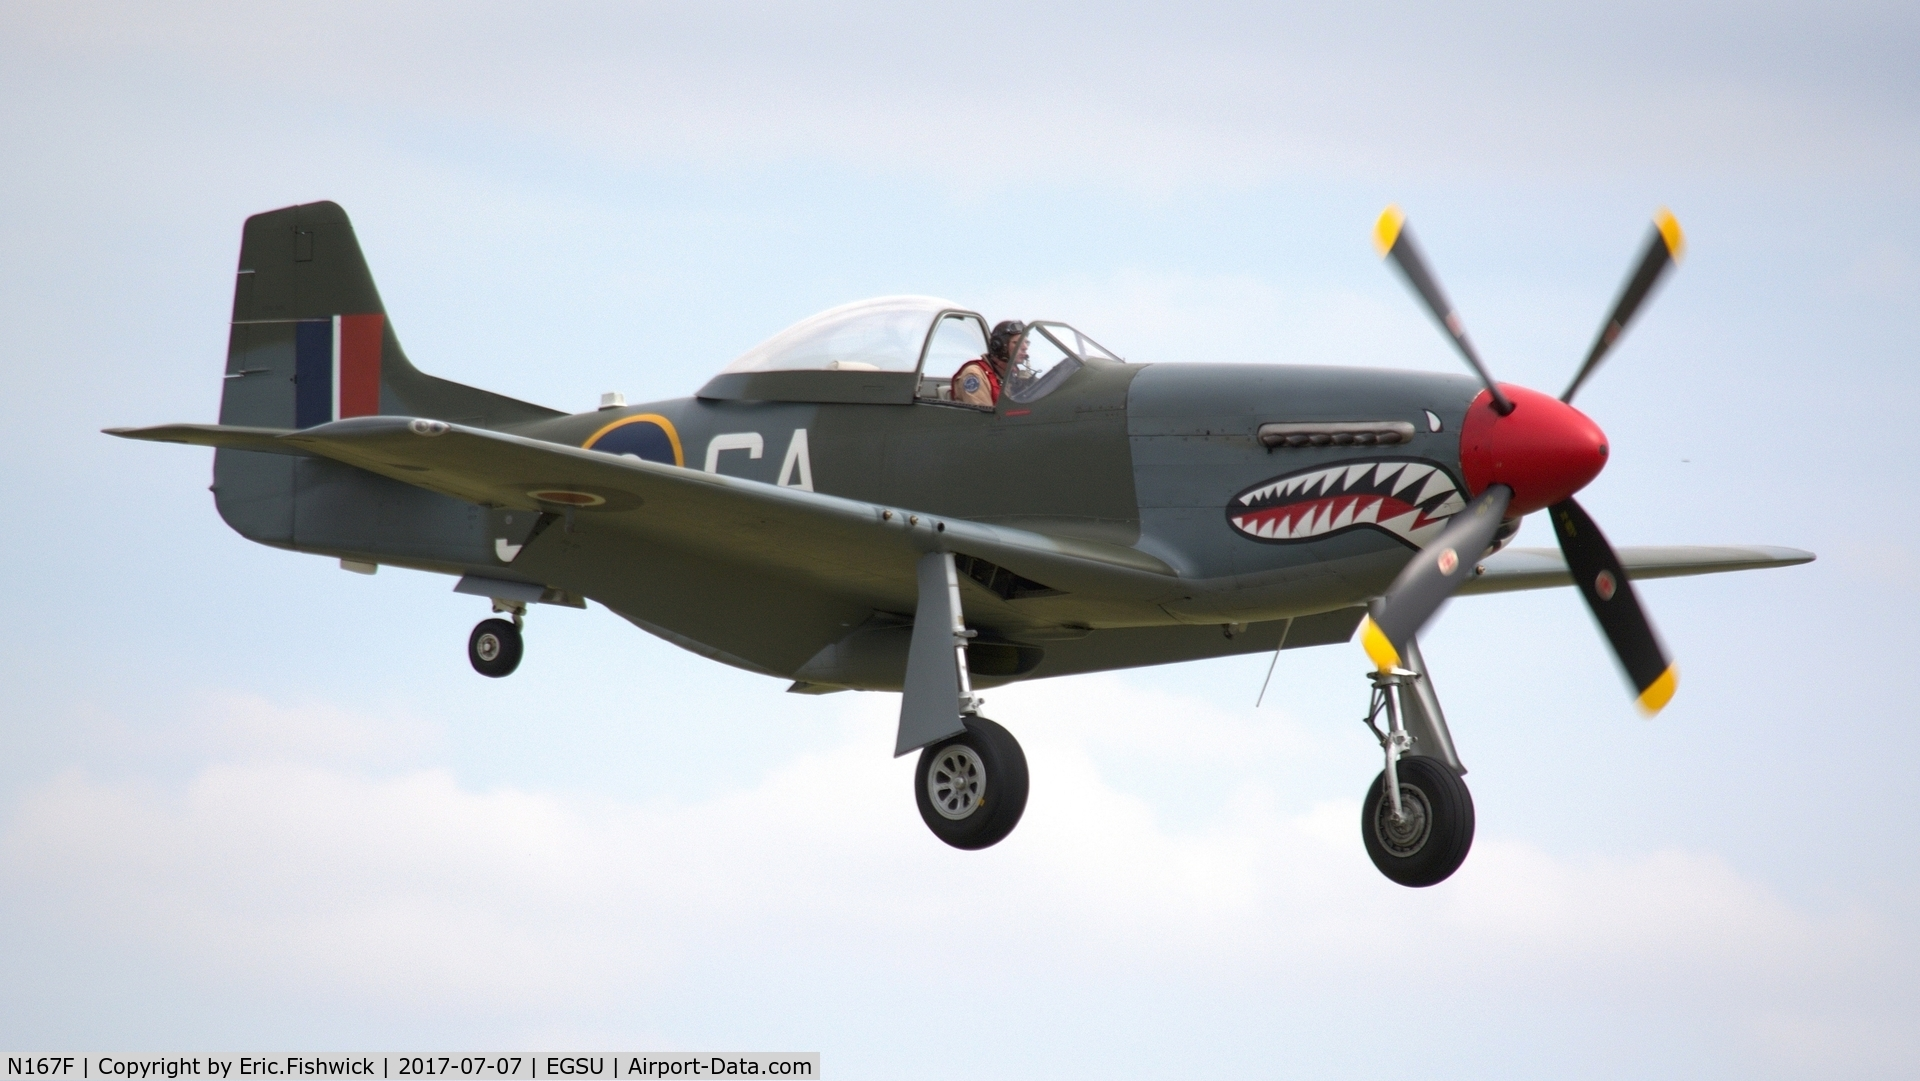 N167F, 1944 North American P-51D Mustang C/N 122-40417, cr. N167F - 'The Shark' on the eve of The Flying Legends Airshow, July 2017.